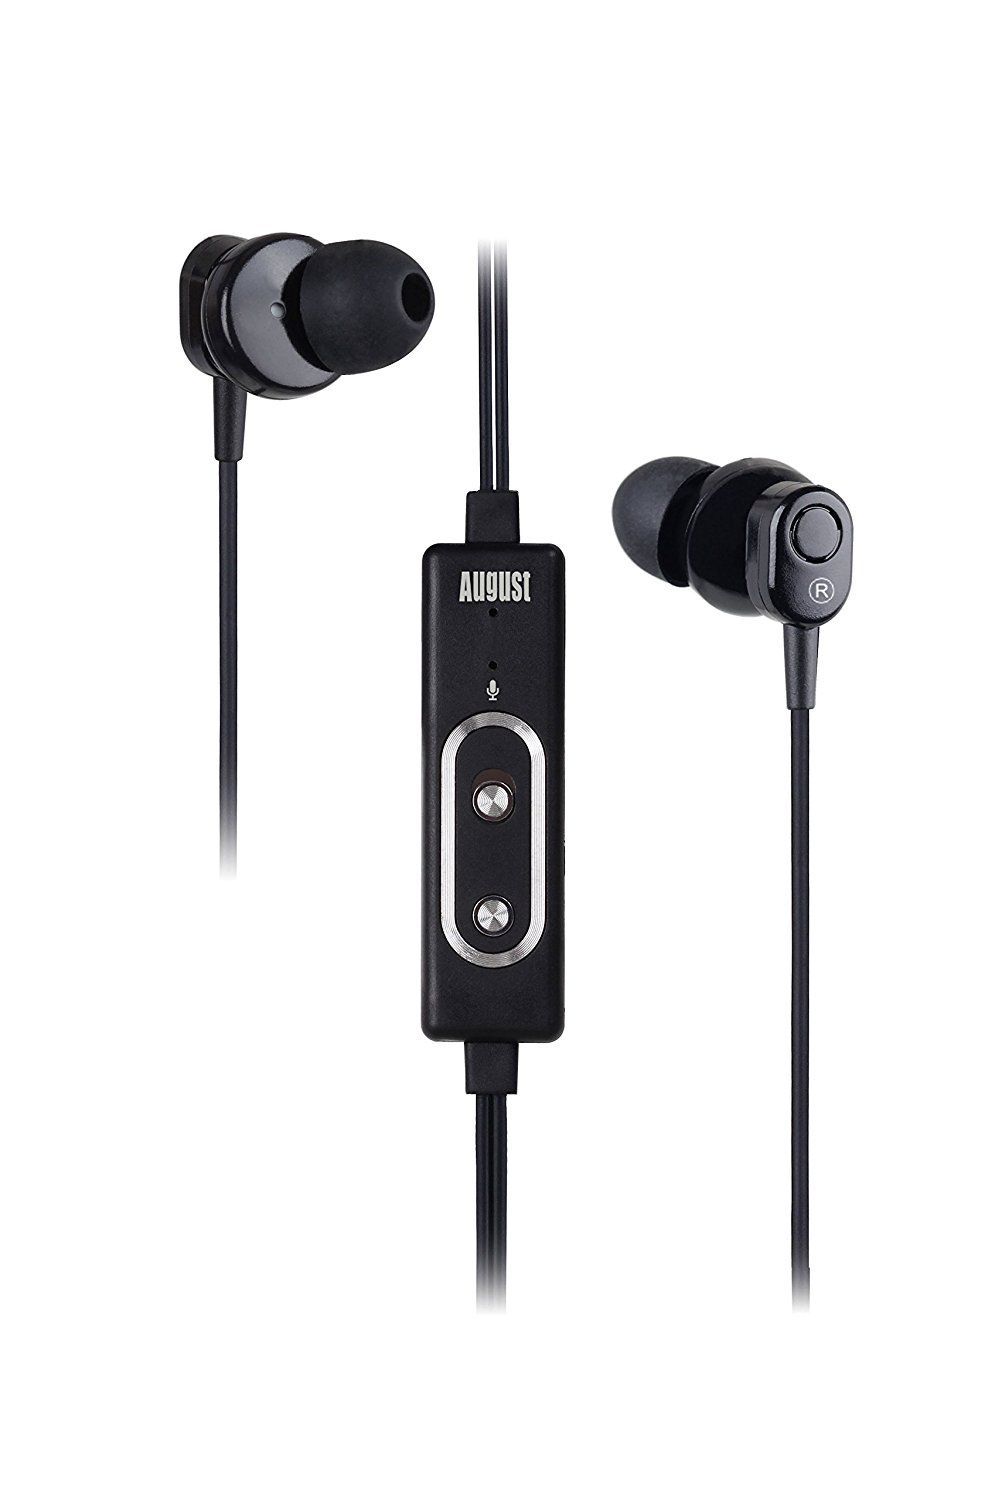 August Ep715 Active Noise Cancelling Earphones Hands Free Calling With Integrated Microphone Reduc Hifi Stereo Active Noise Cancellation Noise Cancelling